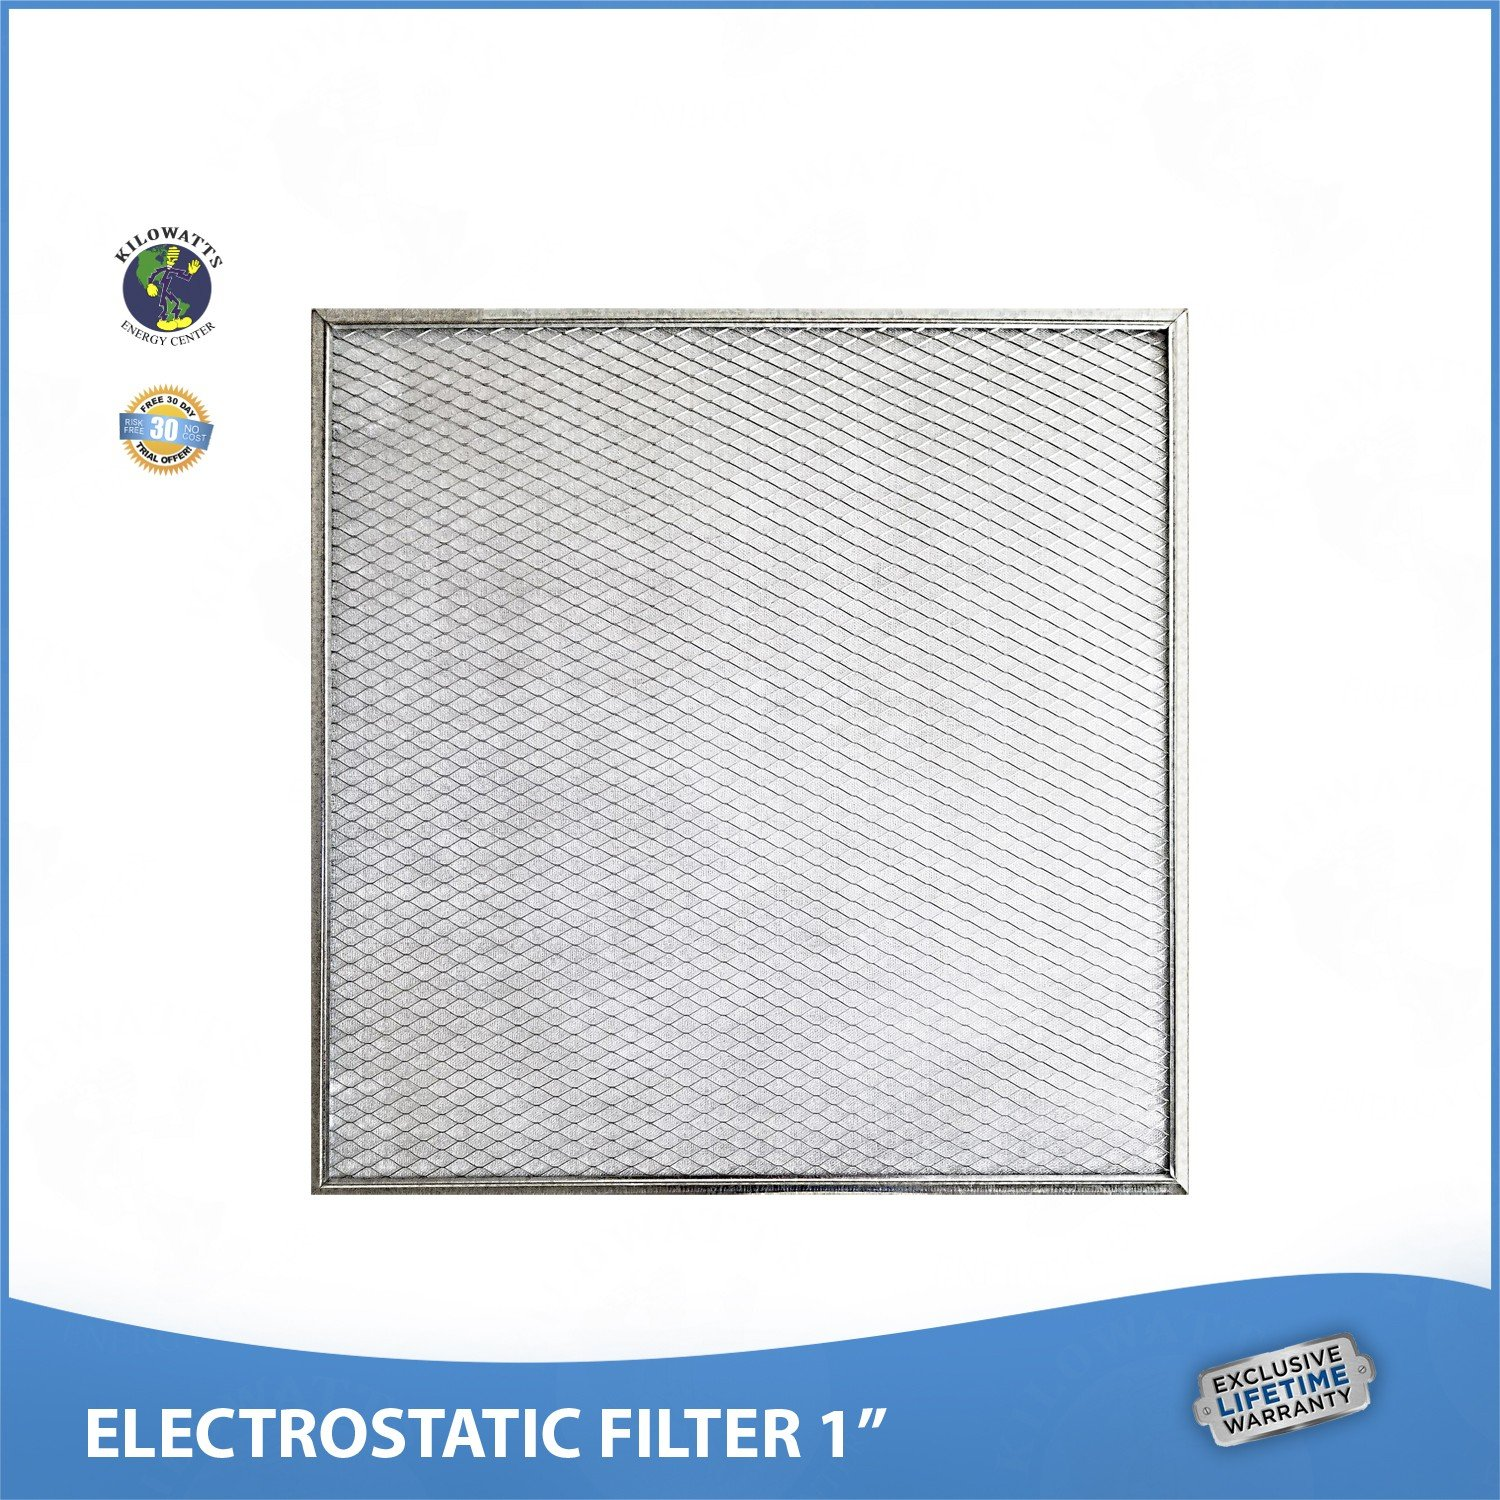 14x24x1 Lifetime Air Filter - Electrostatic A/C Furnace Air Filter Silver 94% Arrestance.. Never Buy a New Filter by AirCare